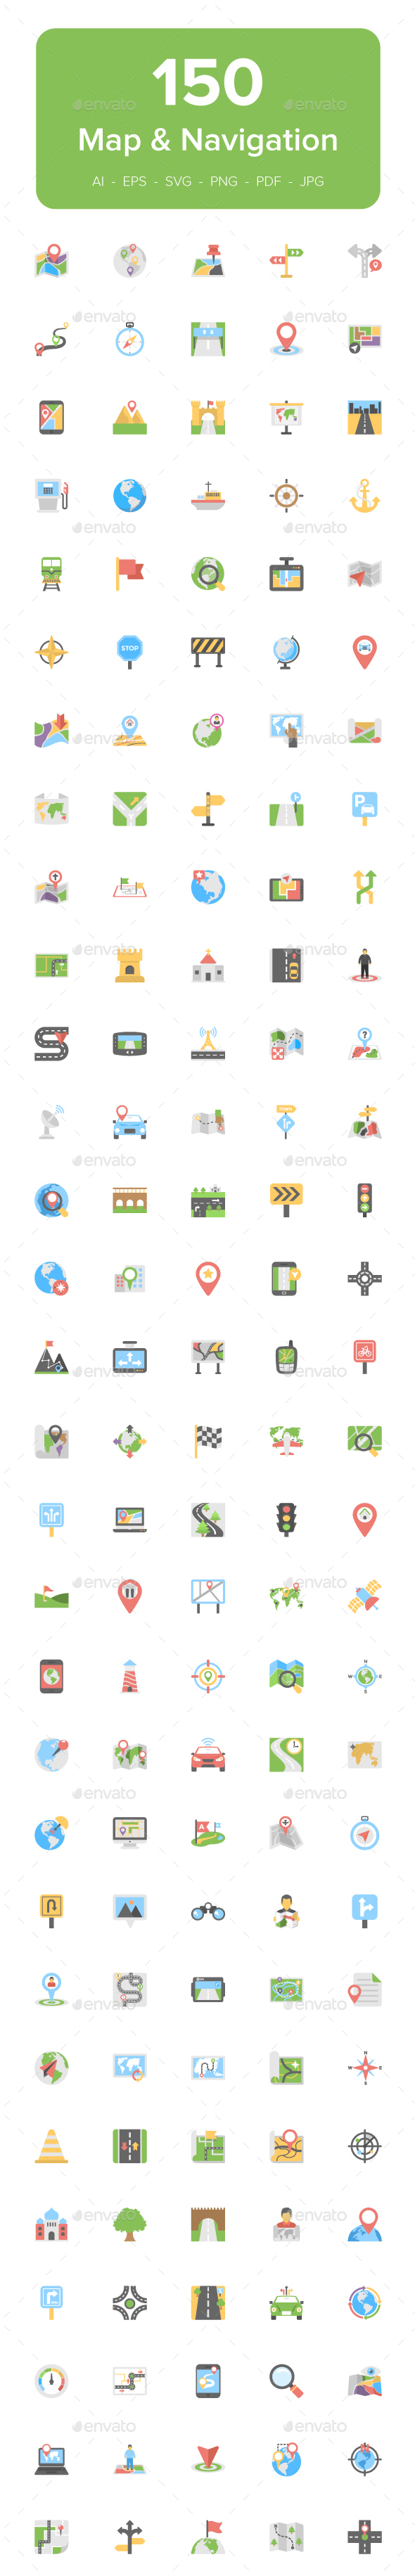 150 Map and Navigation Flat Icons - Icons